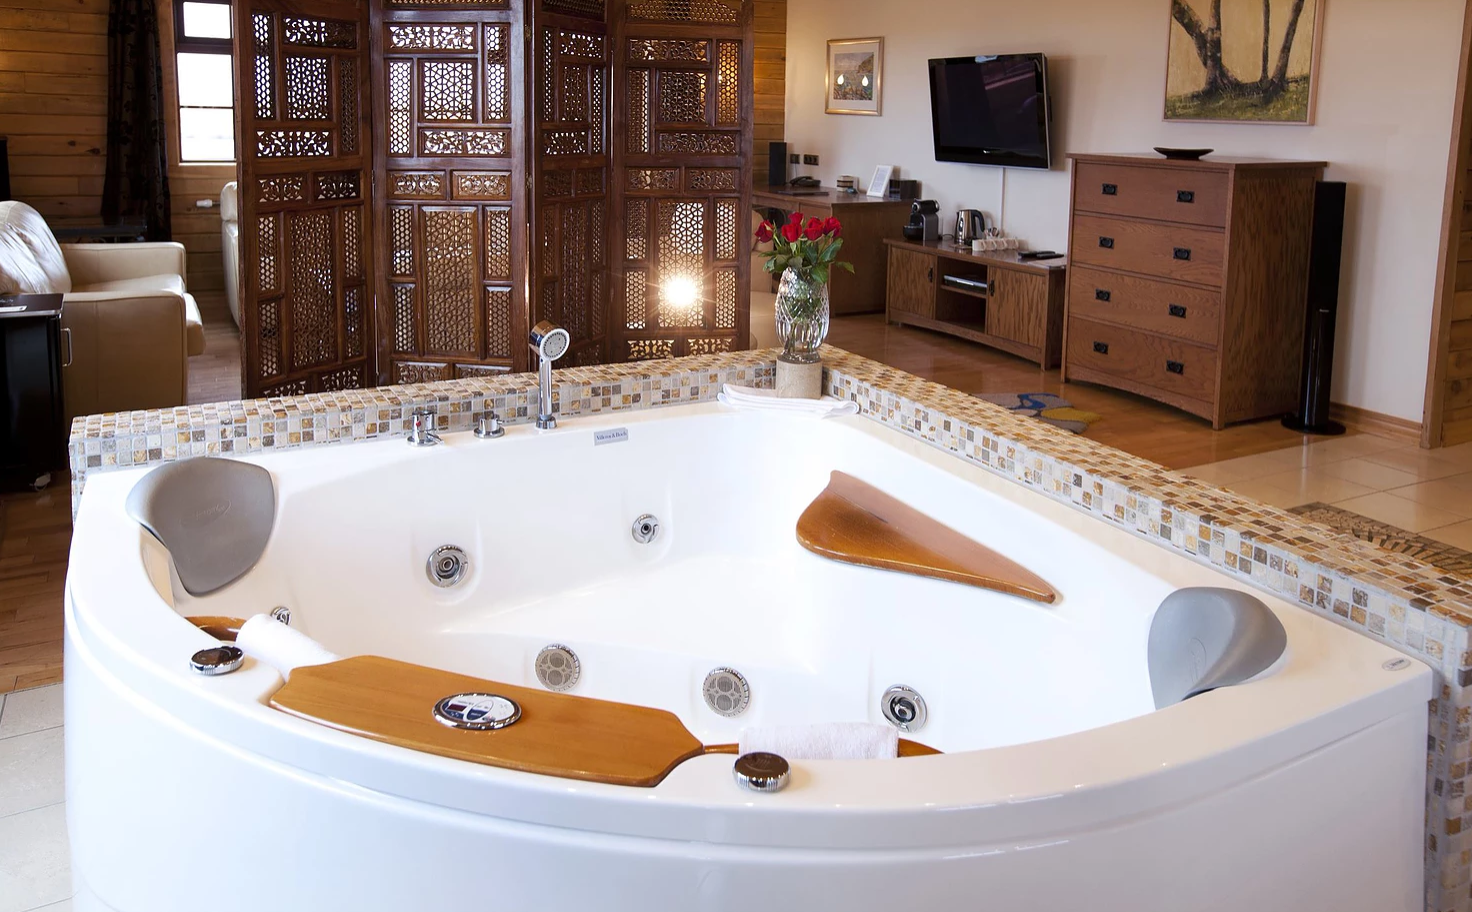 The Bathtub In Our Royal Suite Is In The Middle Of The Room A